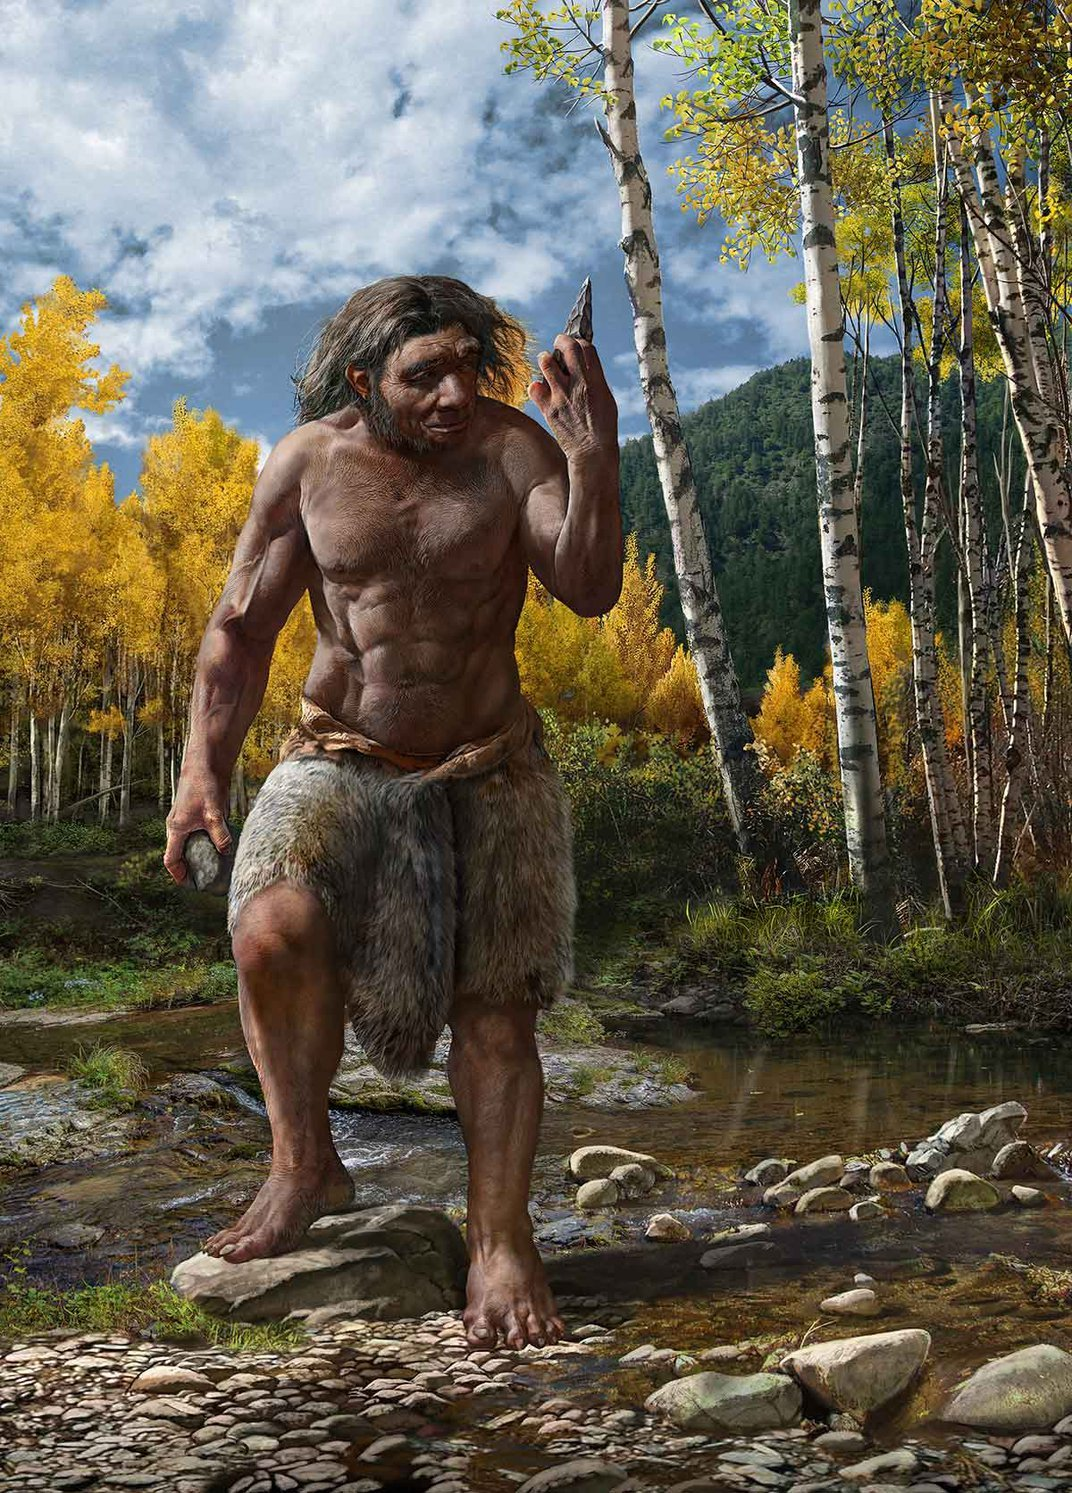 A 146,000-Year-Old Fossil Dubbed 'Dragon Man' Might Be One of Our Closest Relatives